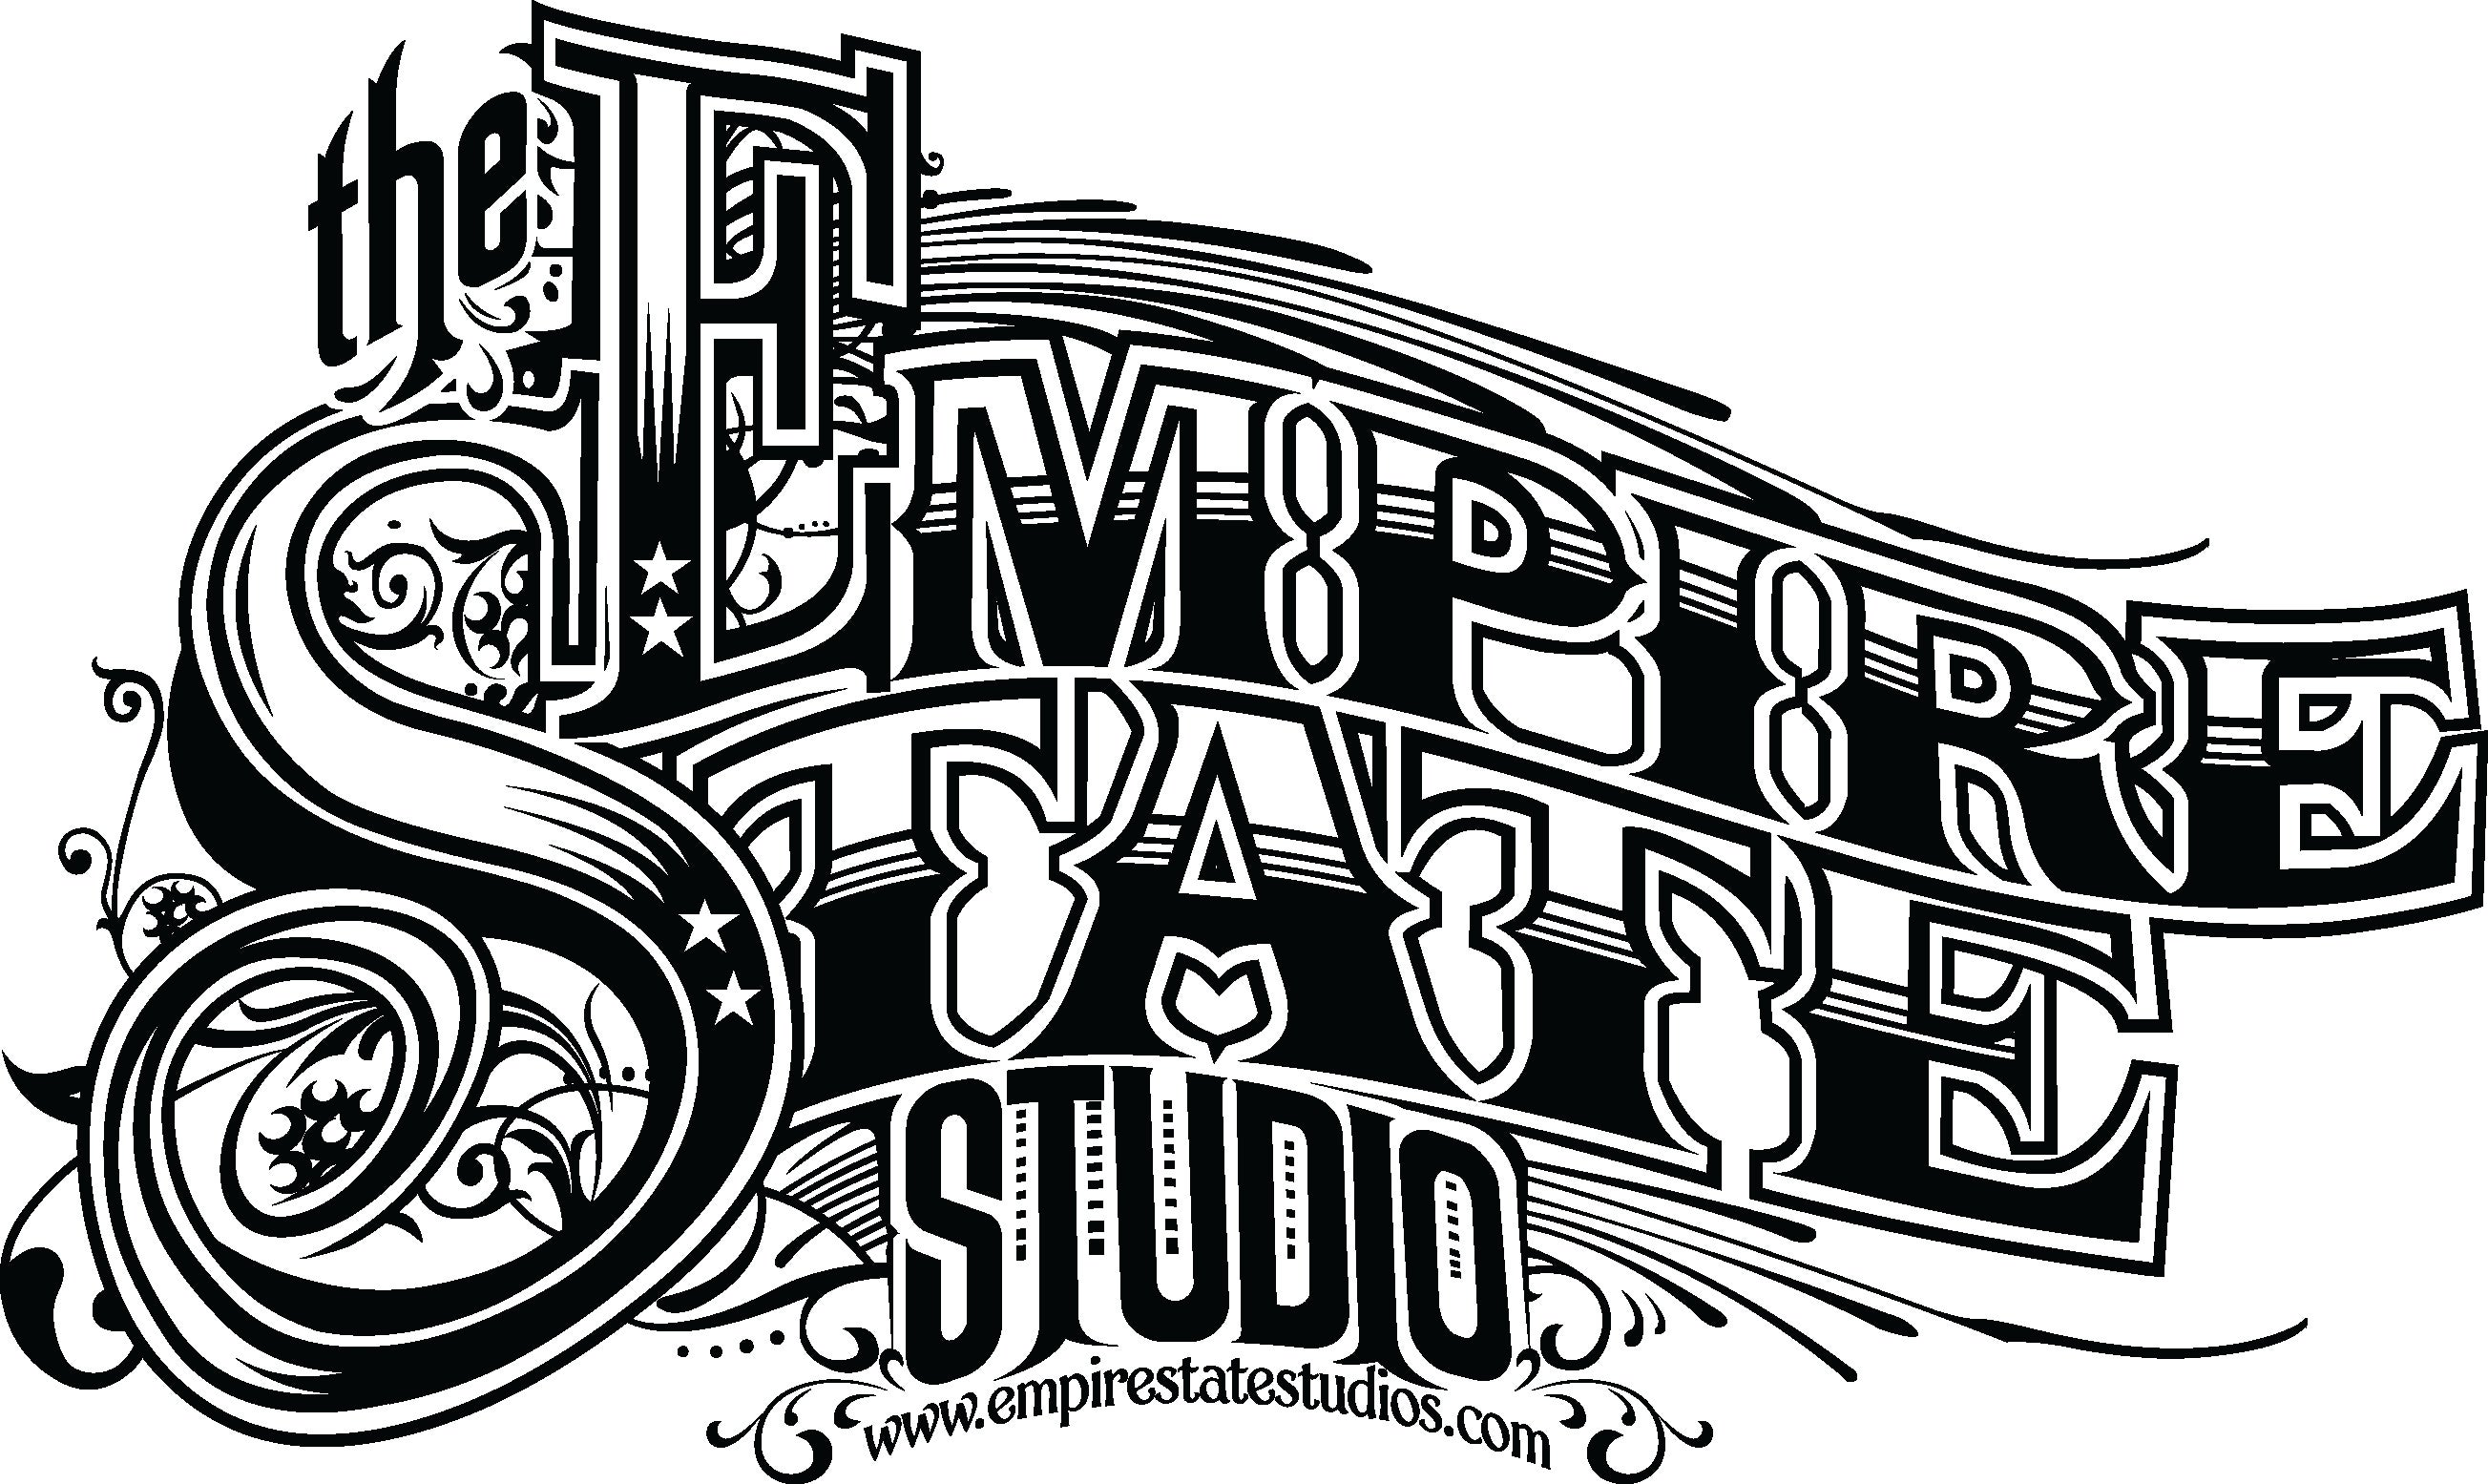 Empire State Studio